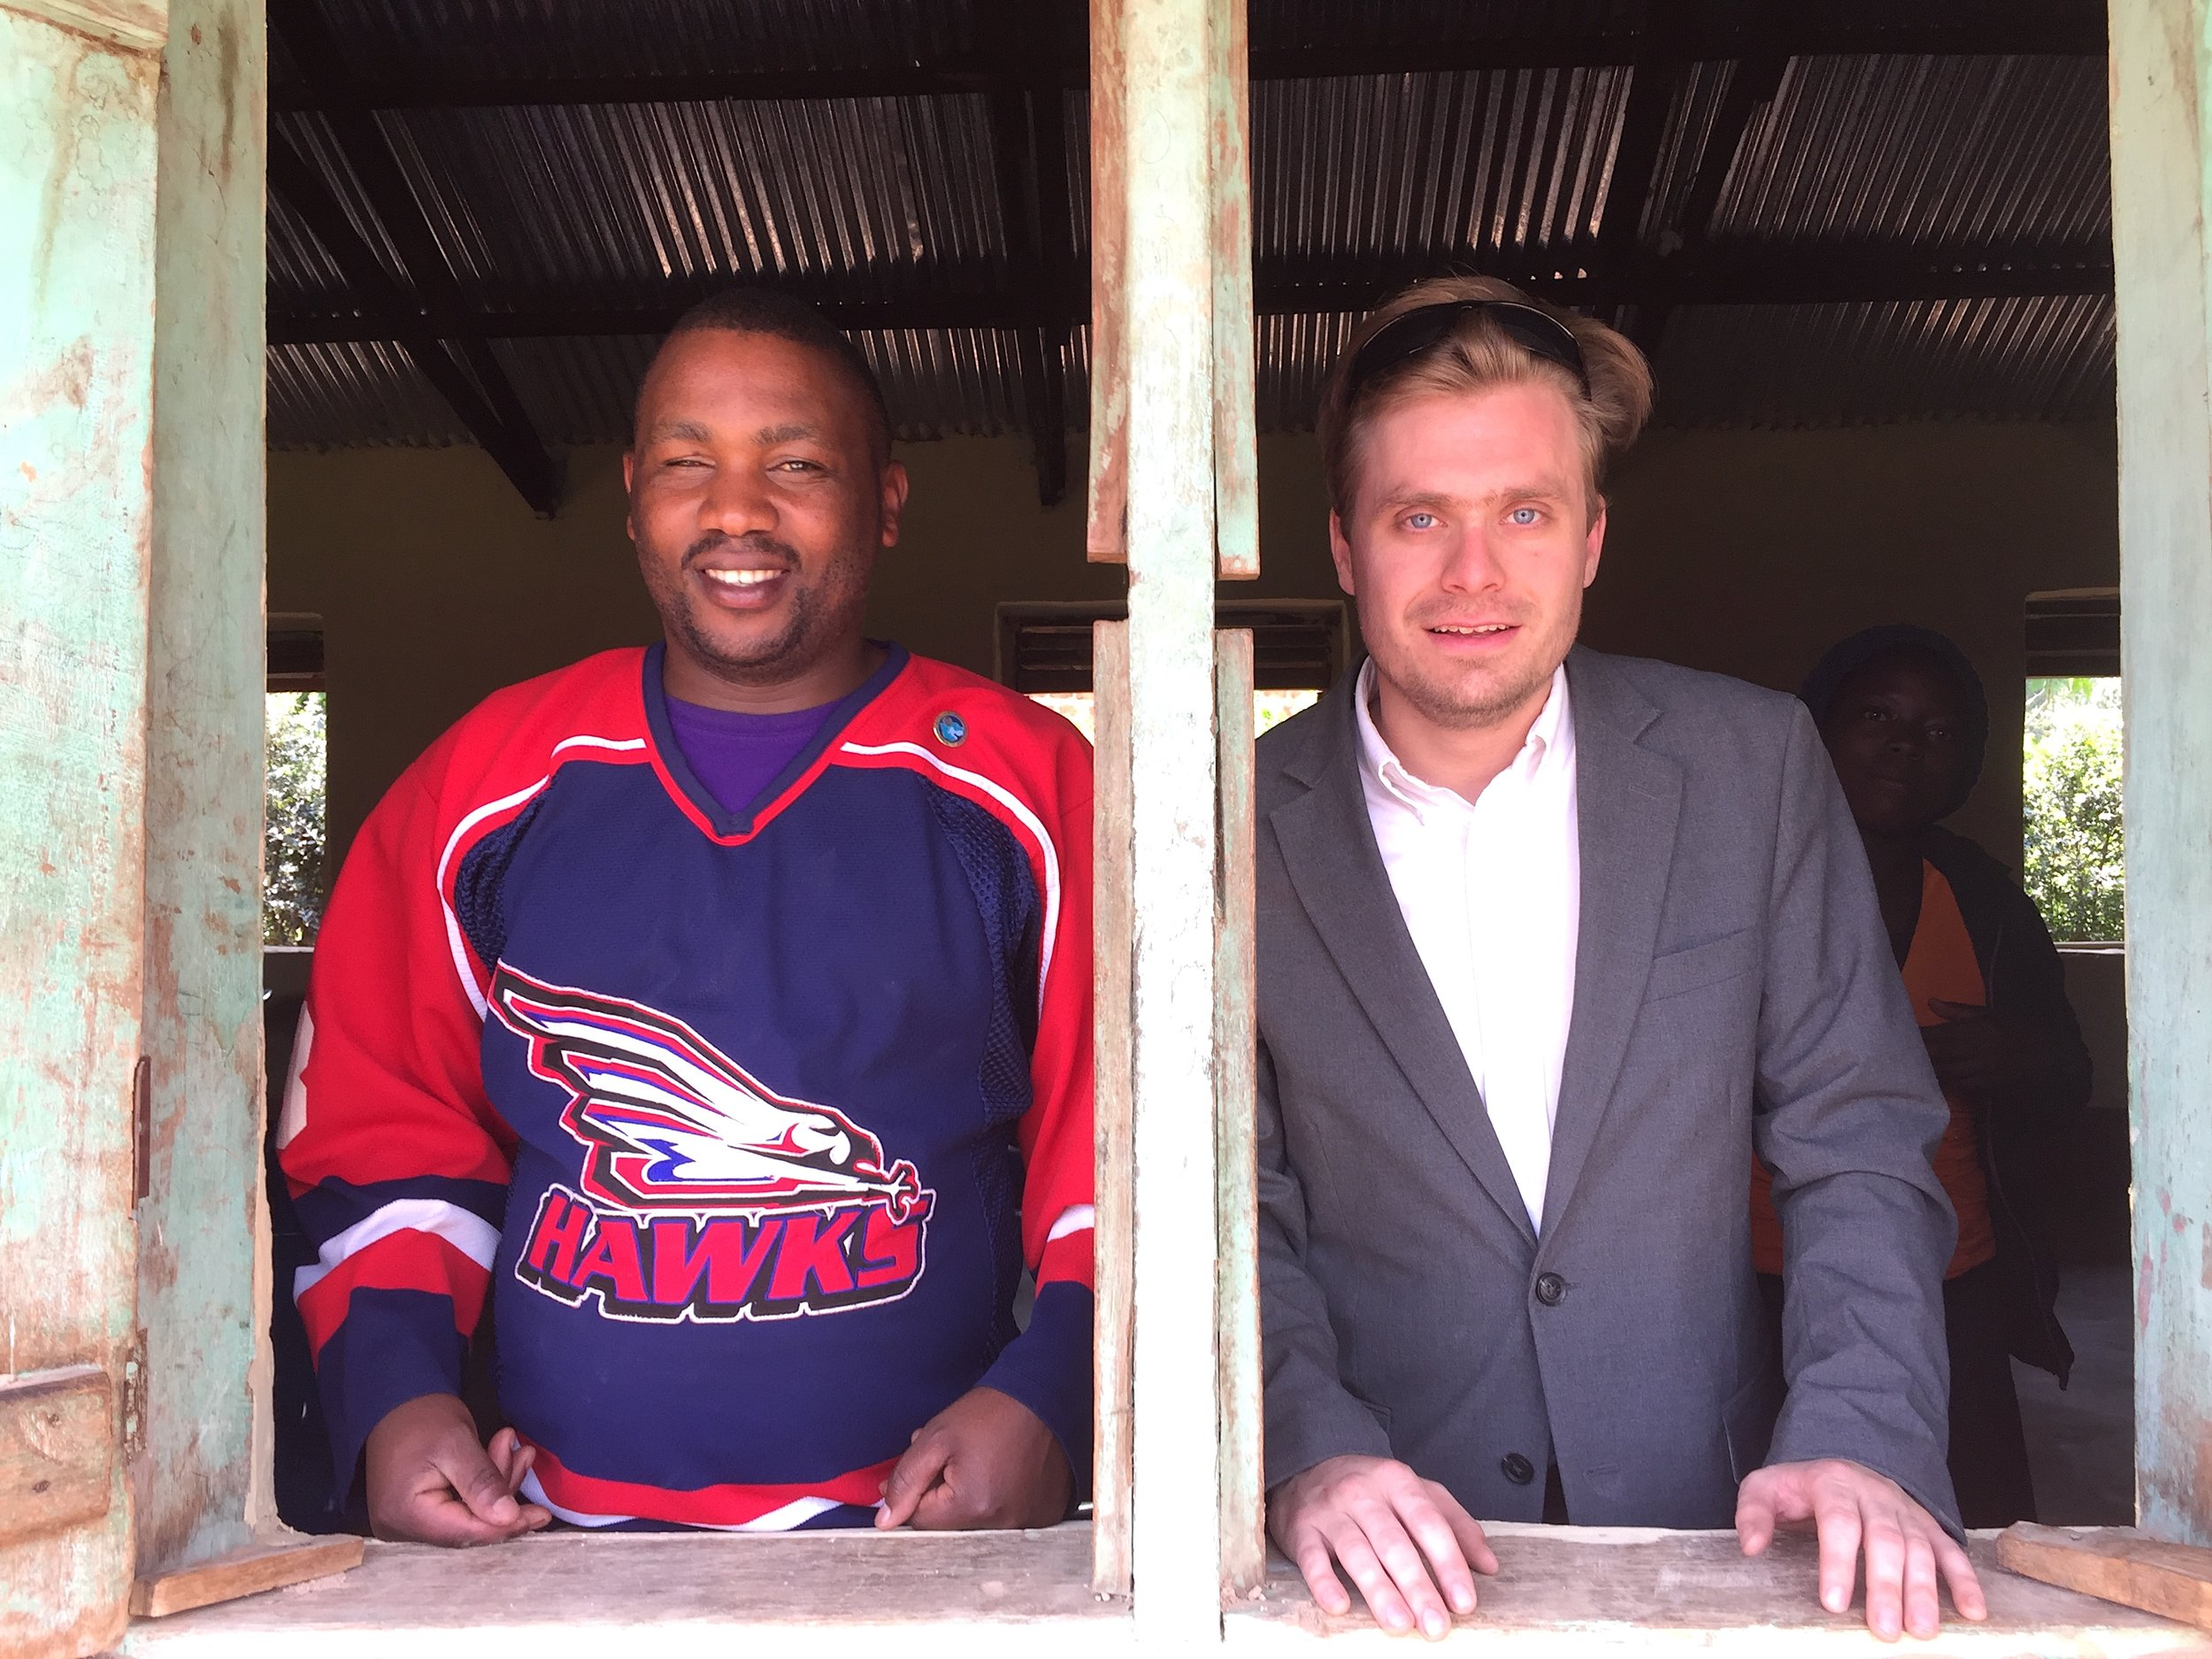 Guma and Evan looking out classroom windows at Muko High School.